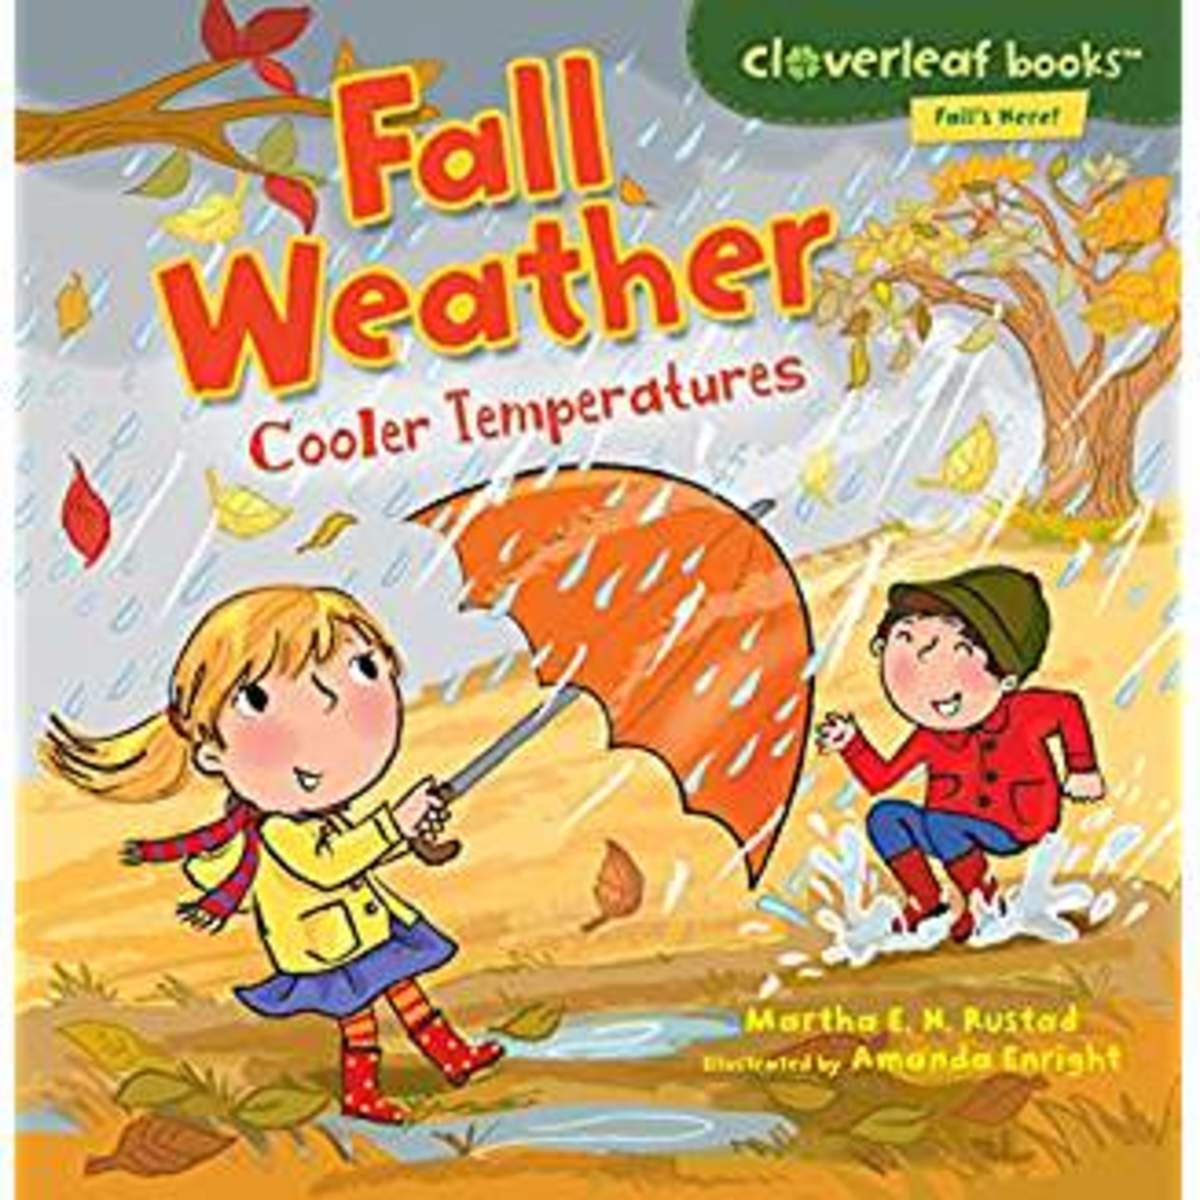 Fall Weather: Cooler Temperatures by Martha E. H. Rustad